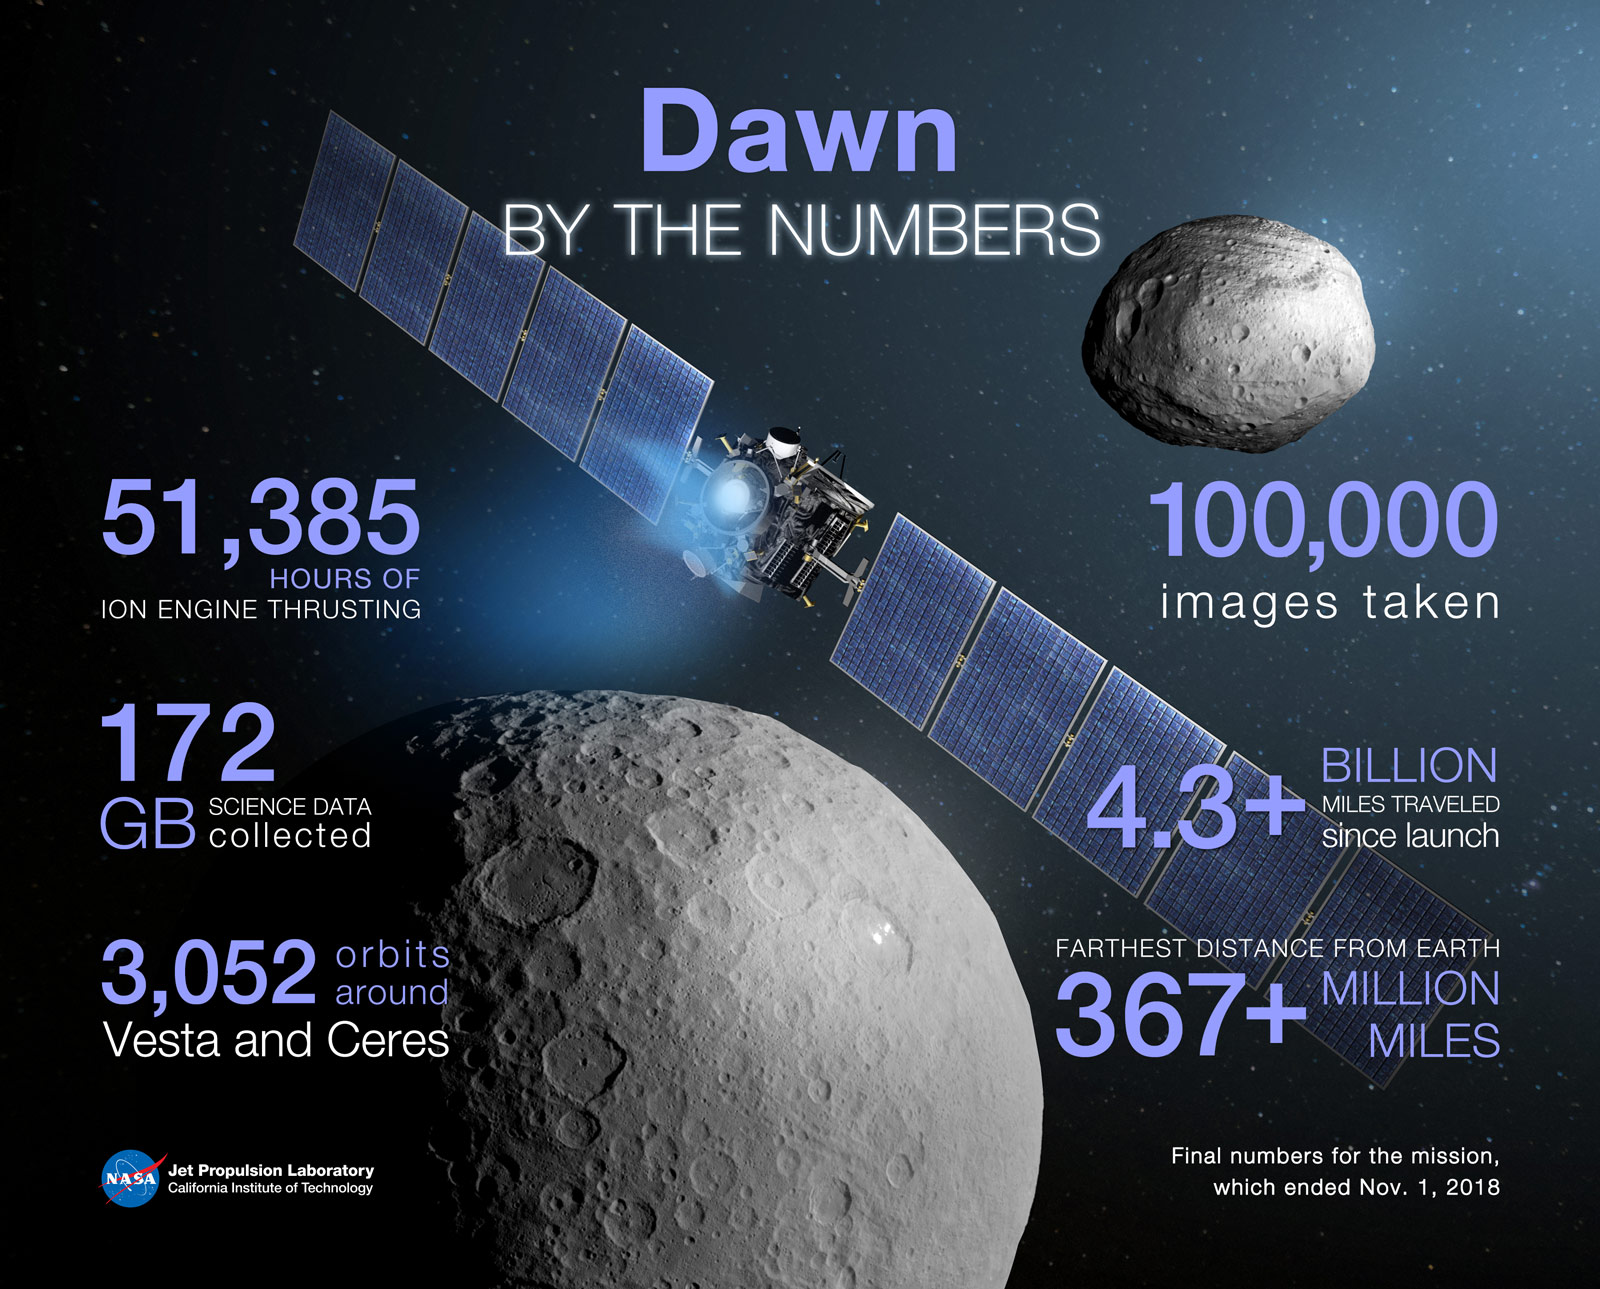 Infographic showing stats on the Dawn mission